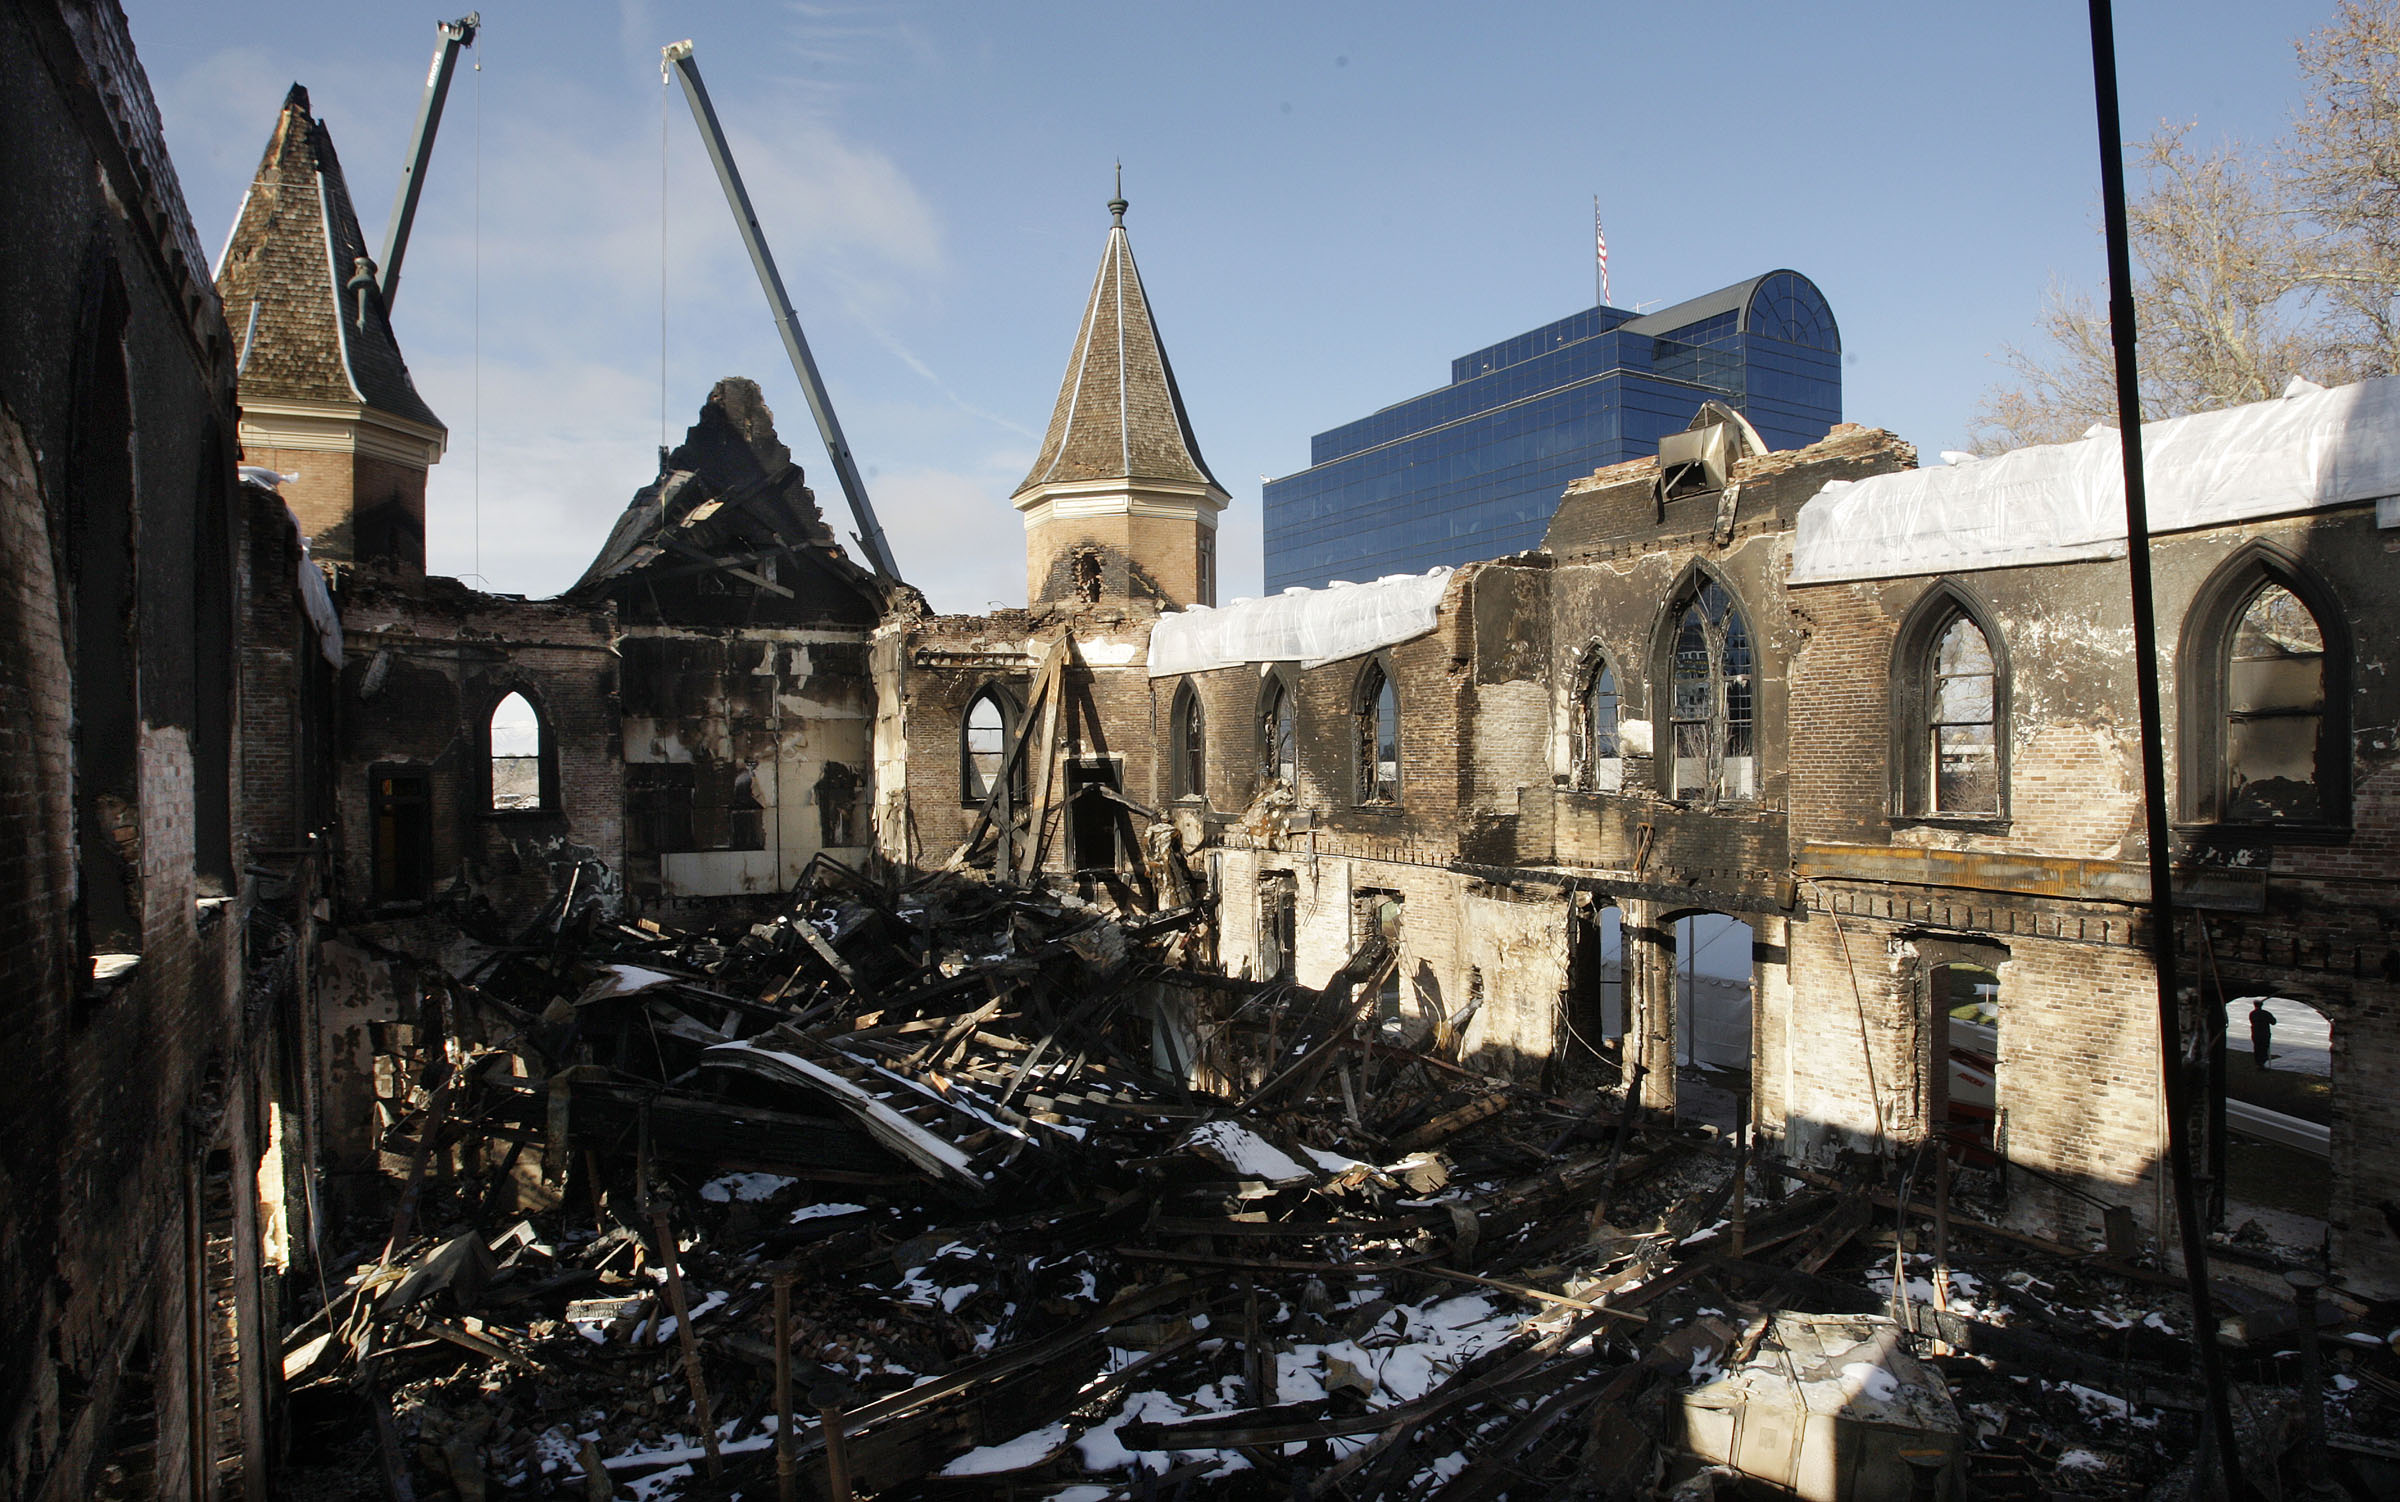 The outside walls are some of the remains of the LDS Provo Tabernacle after a fire destroyed the building in Provo, Utah, Dec. 28, 2010.